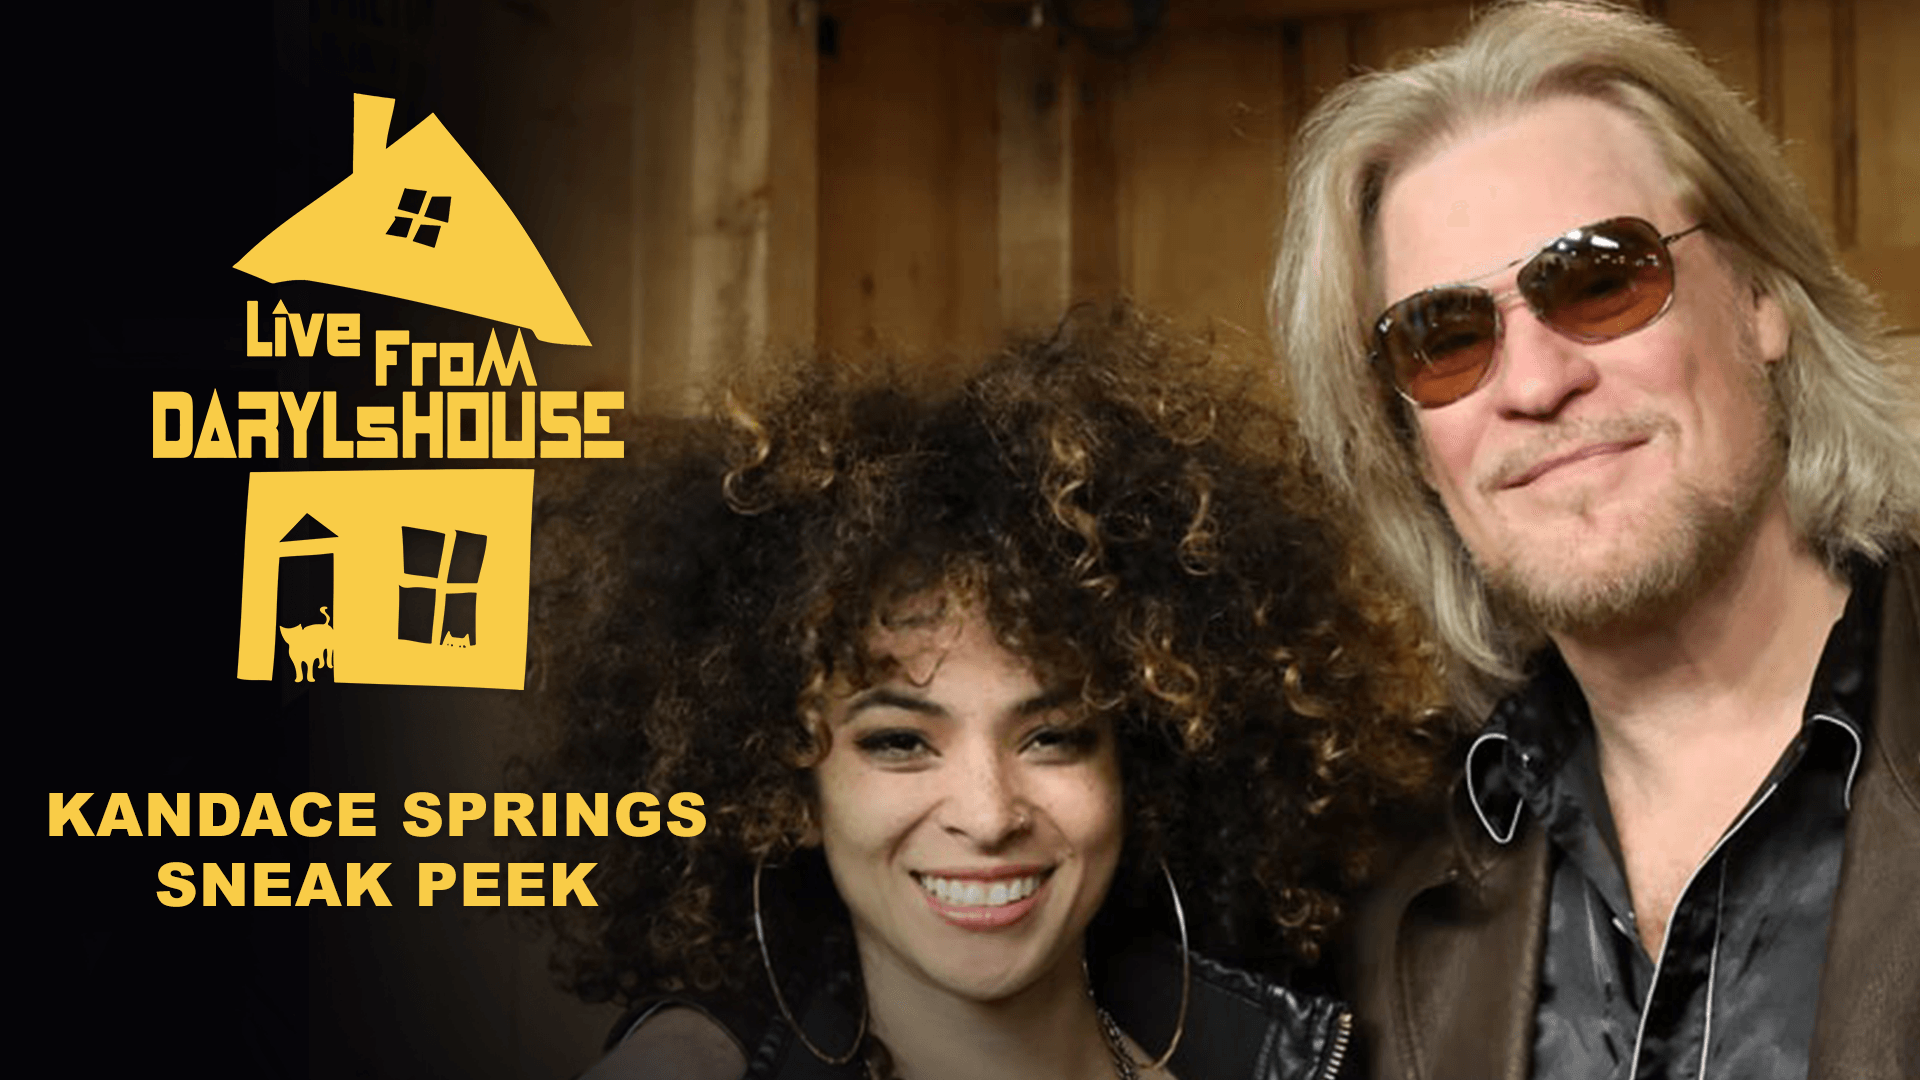 Kandace Springs Trailer | Live From Daryl's House